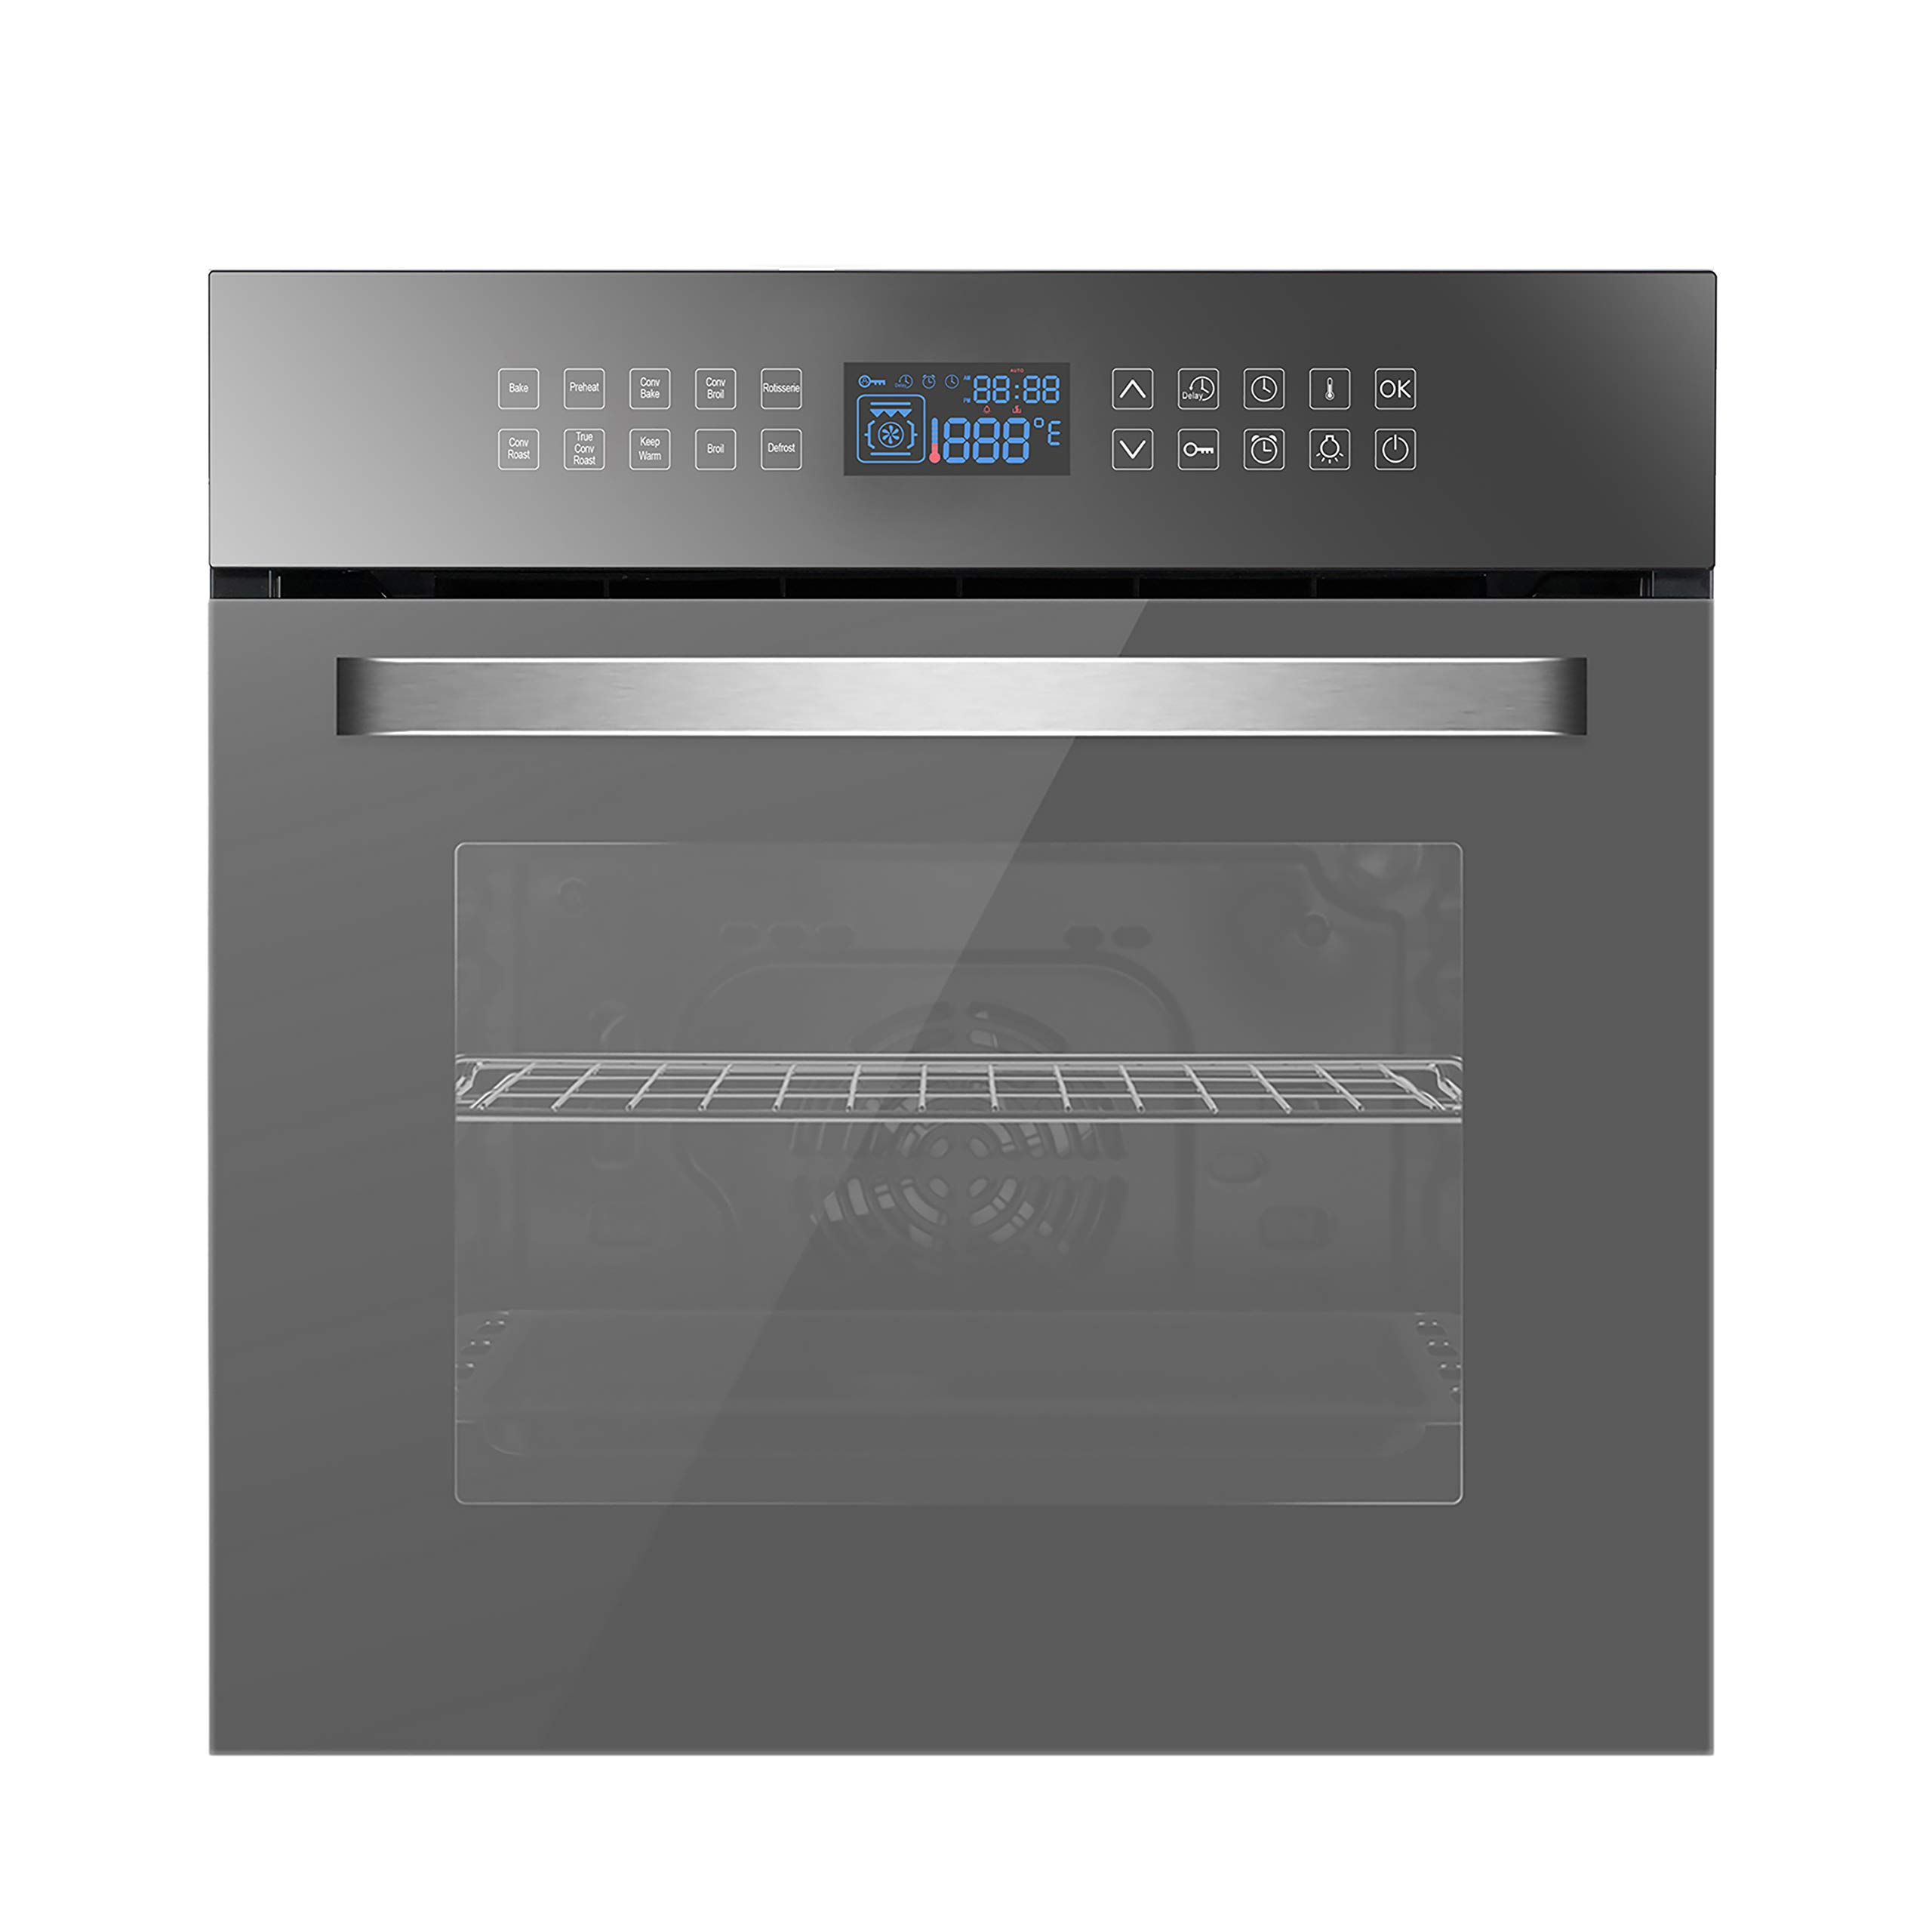 Empava 24 Inch Electric Convection Single Wall 10 Cooking Functions Deluxe 360° ROTISSERIE with Sensitive Touch Control in Silver Mirror Glass, Black